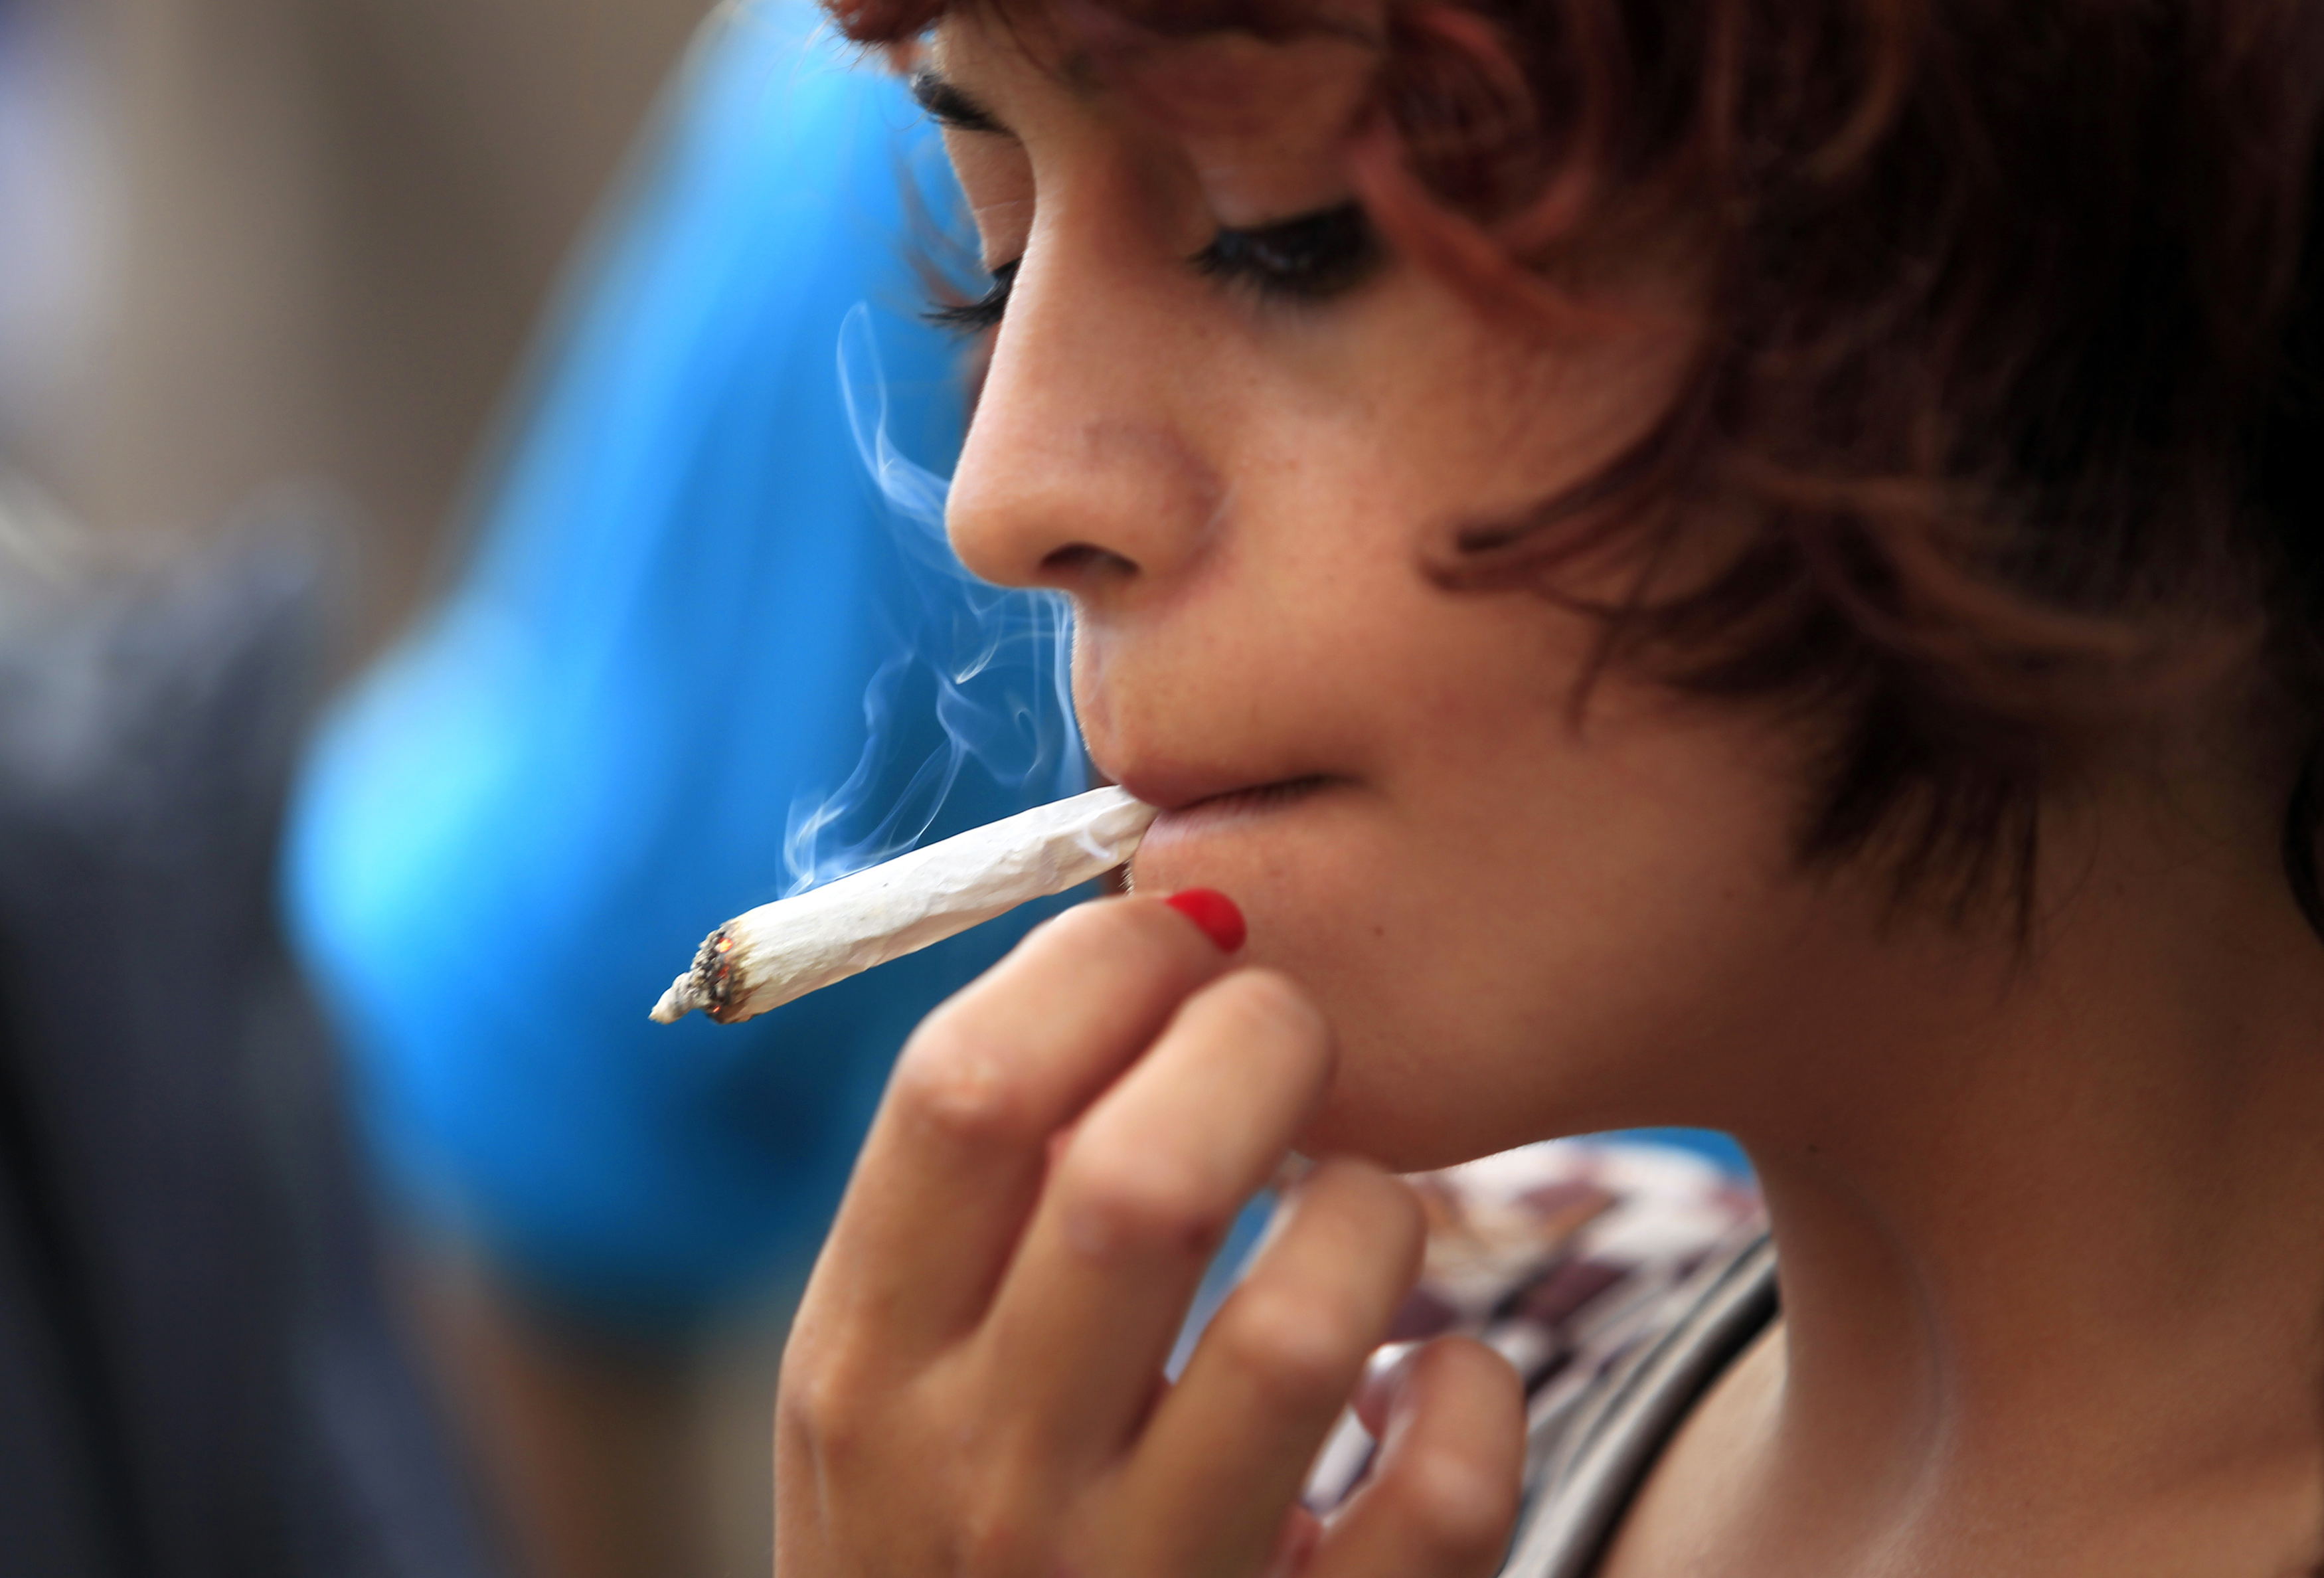 Health issuses for teens who smoke